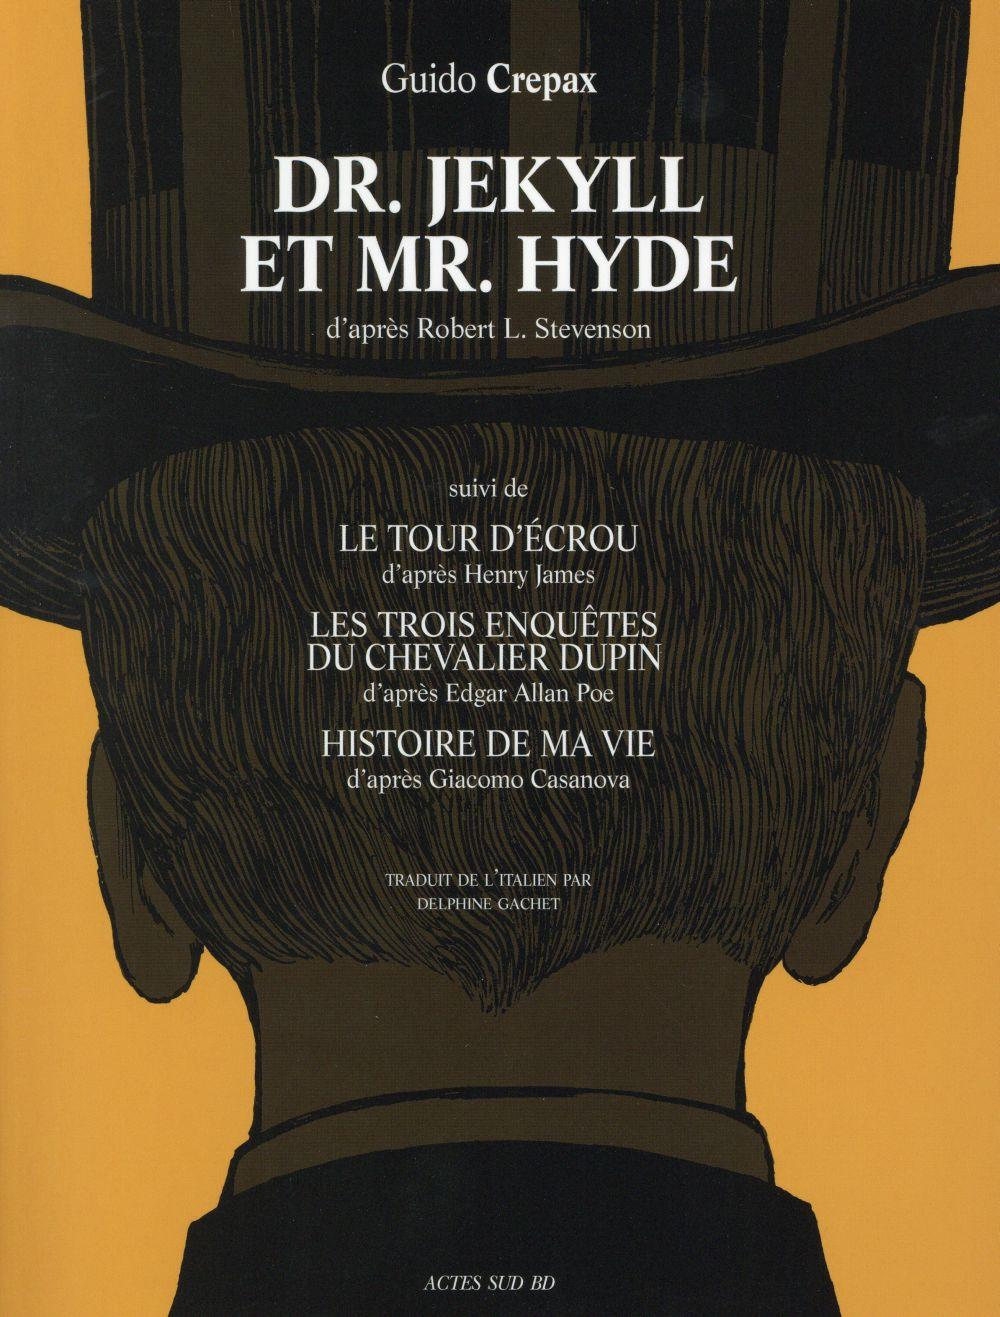 Dr Jekyll et mr Hyde  - Robert Louis Stevenson  - Guido Crepax